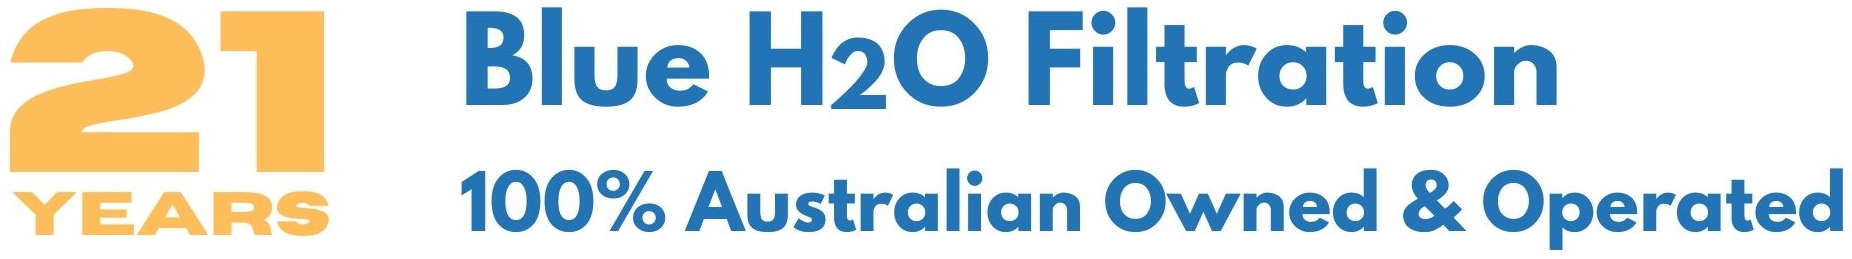 blue h2o filtration 21 years australian owned and operated